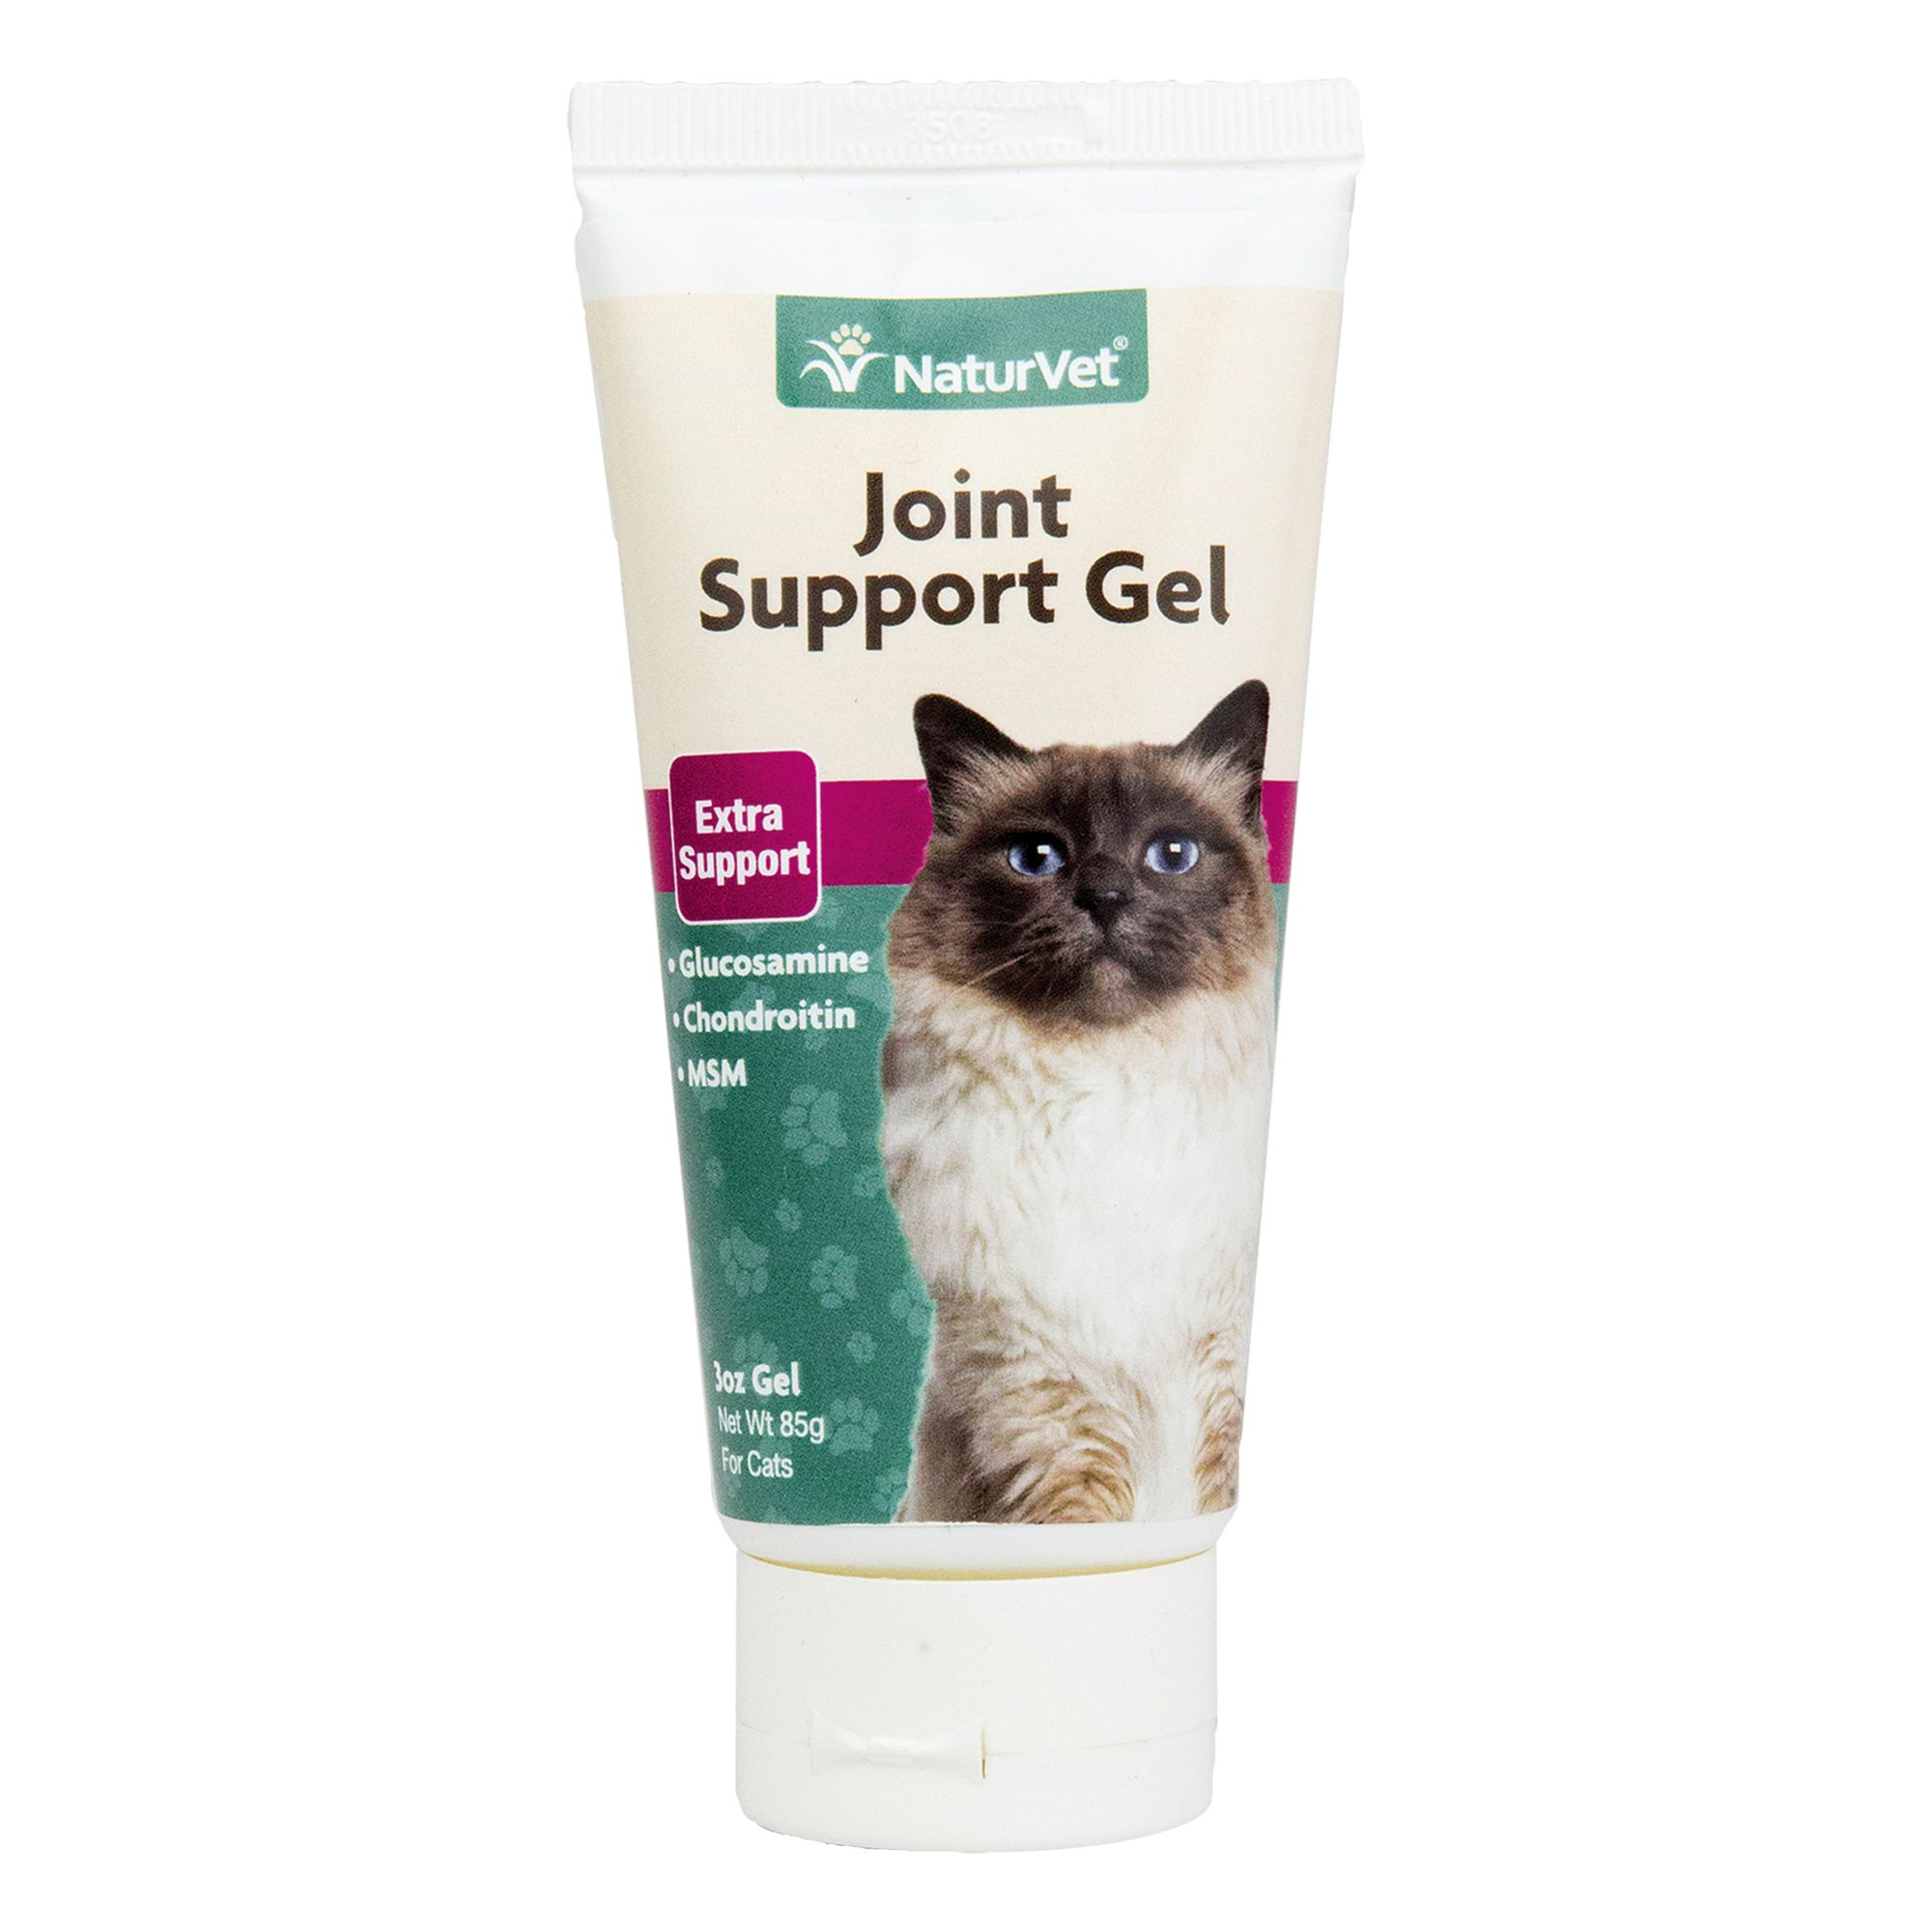 NaturVet Cat Joint Support Gel